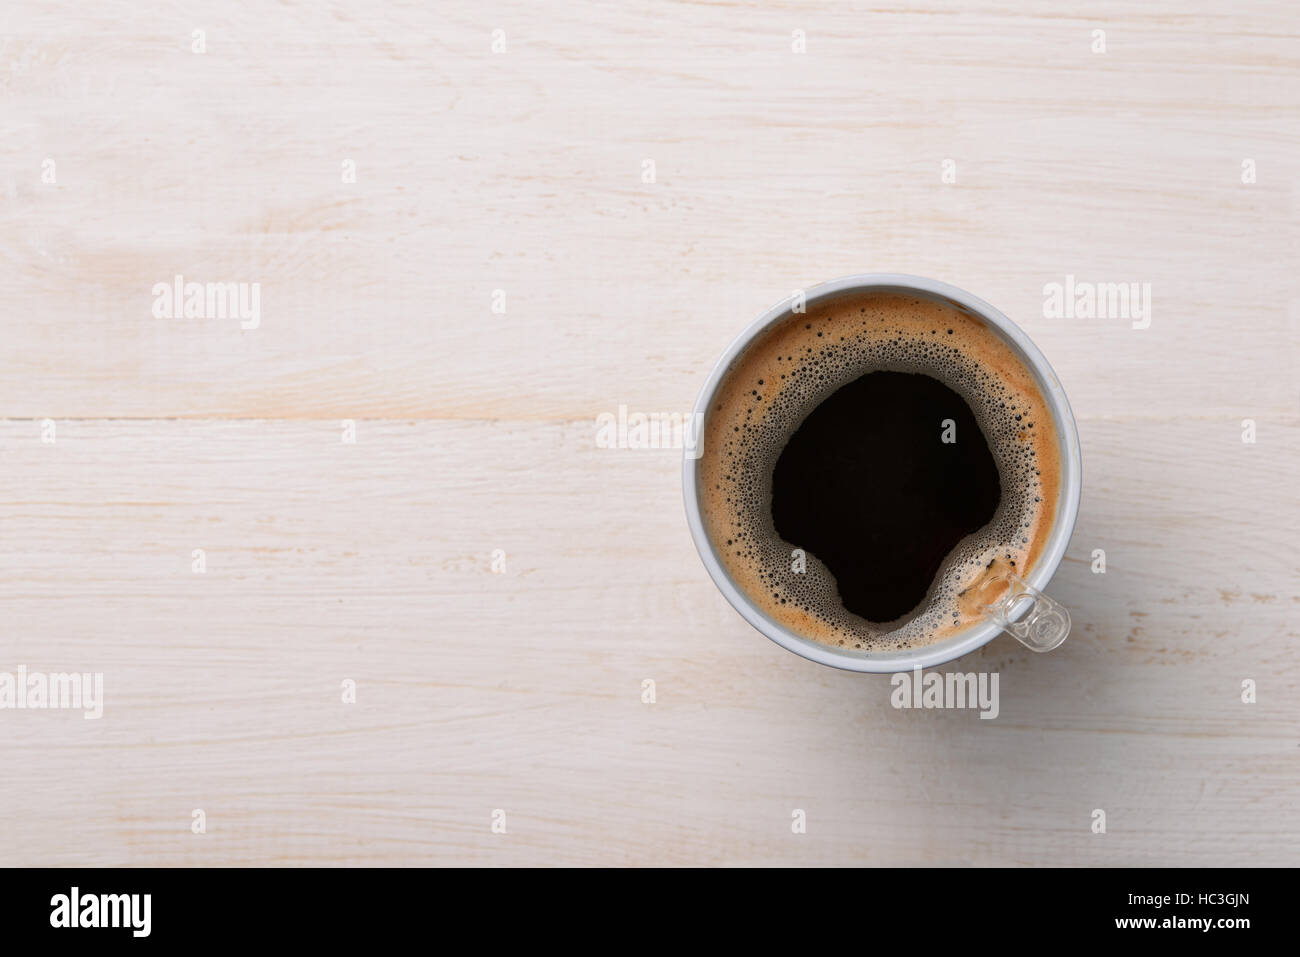 Top view of black coffee in plastic cup on white wooden table - Stock Image